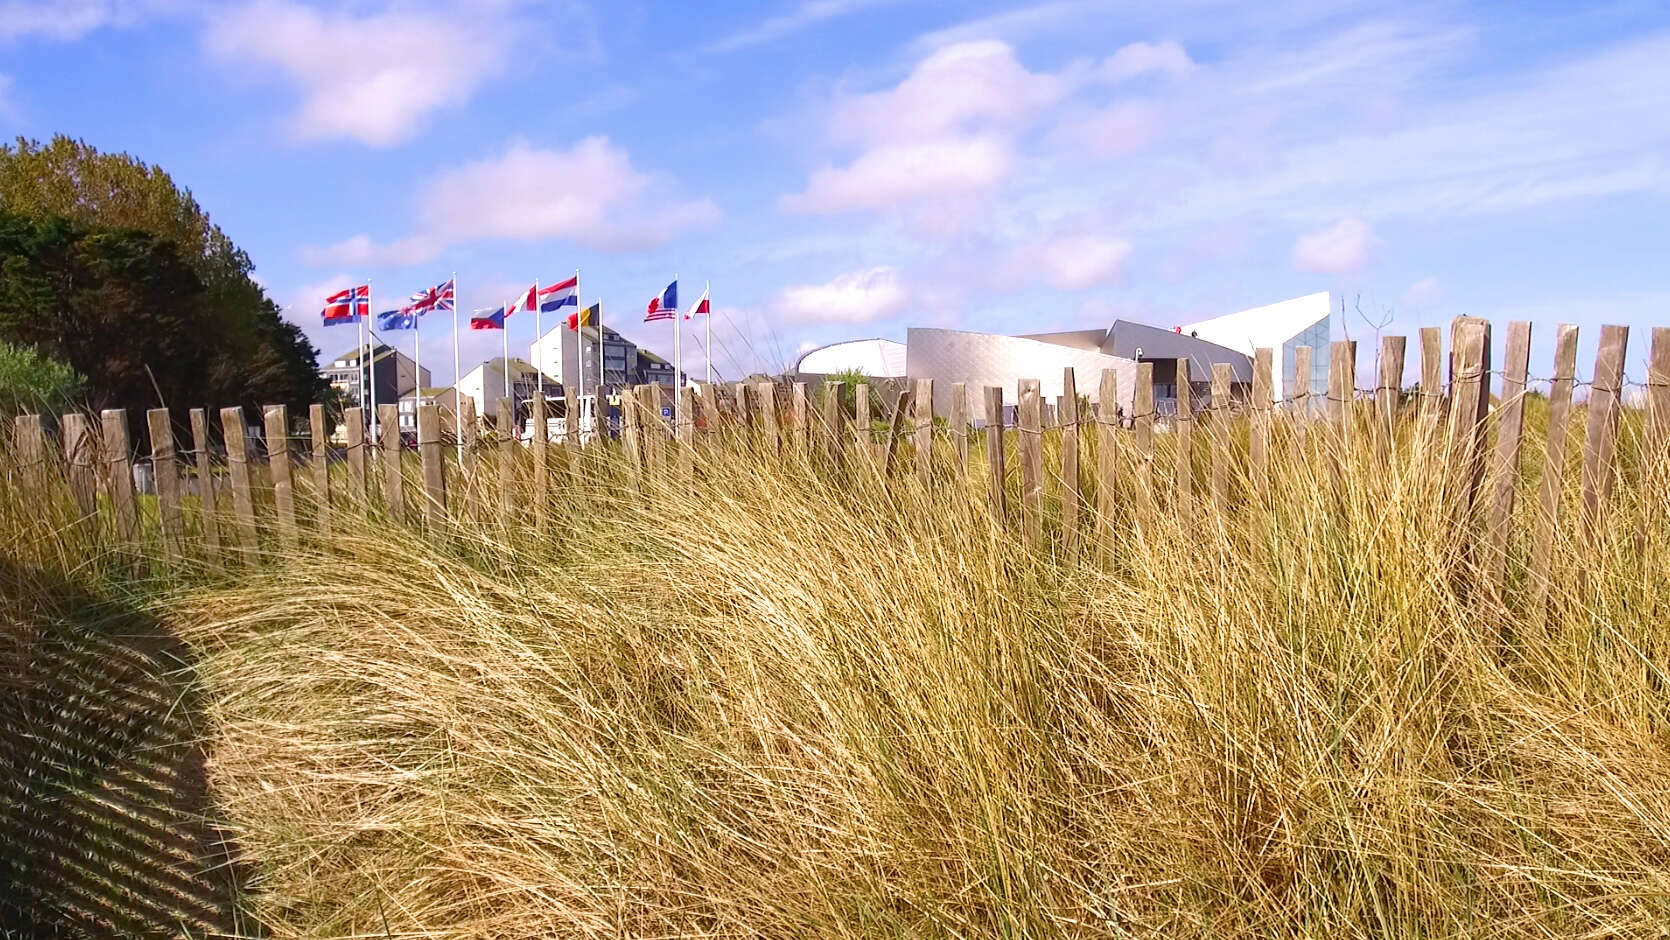 Save up to $1200 and Free Air! Paris to Normandy and Canada's DDay Landing Beach on an Avalon River Cruise